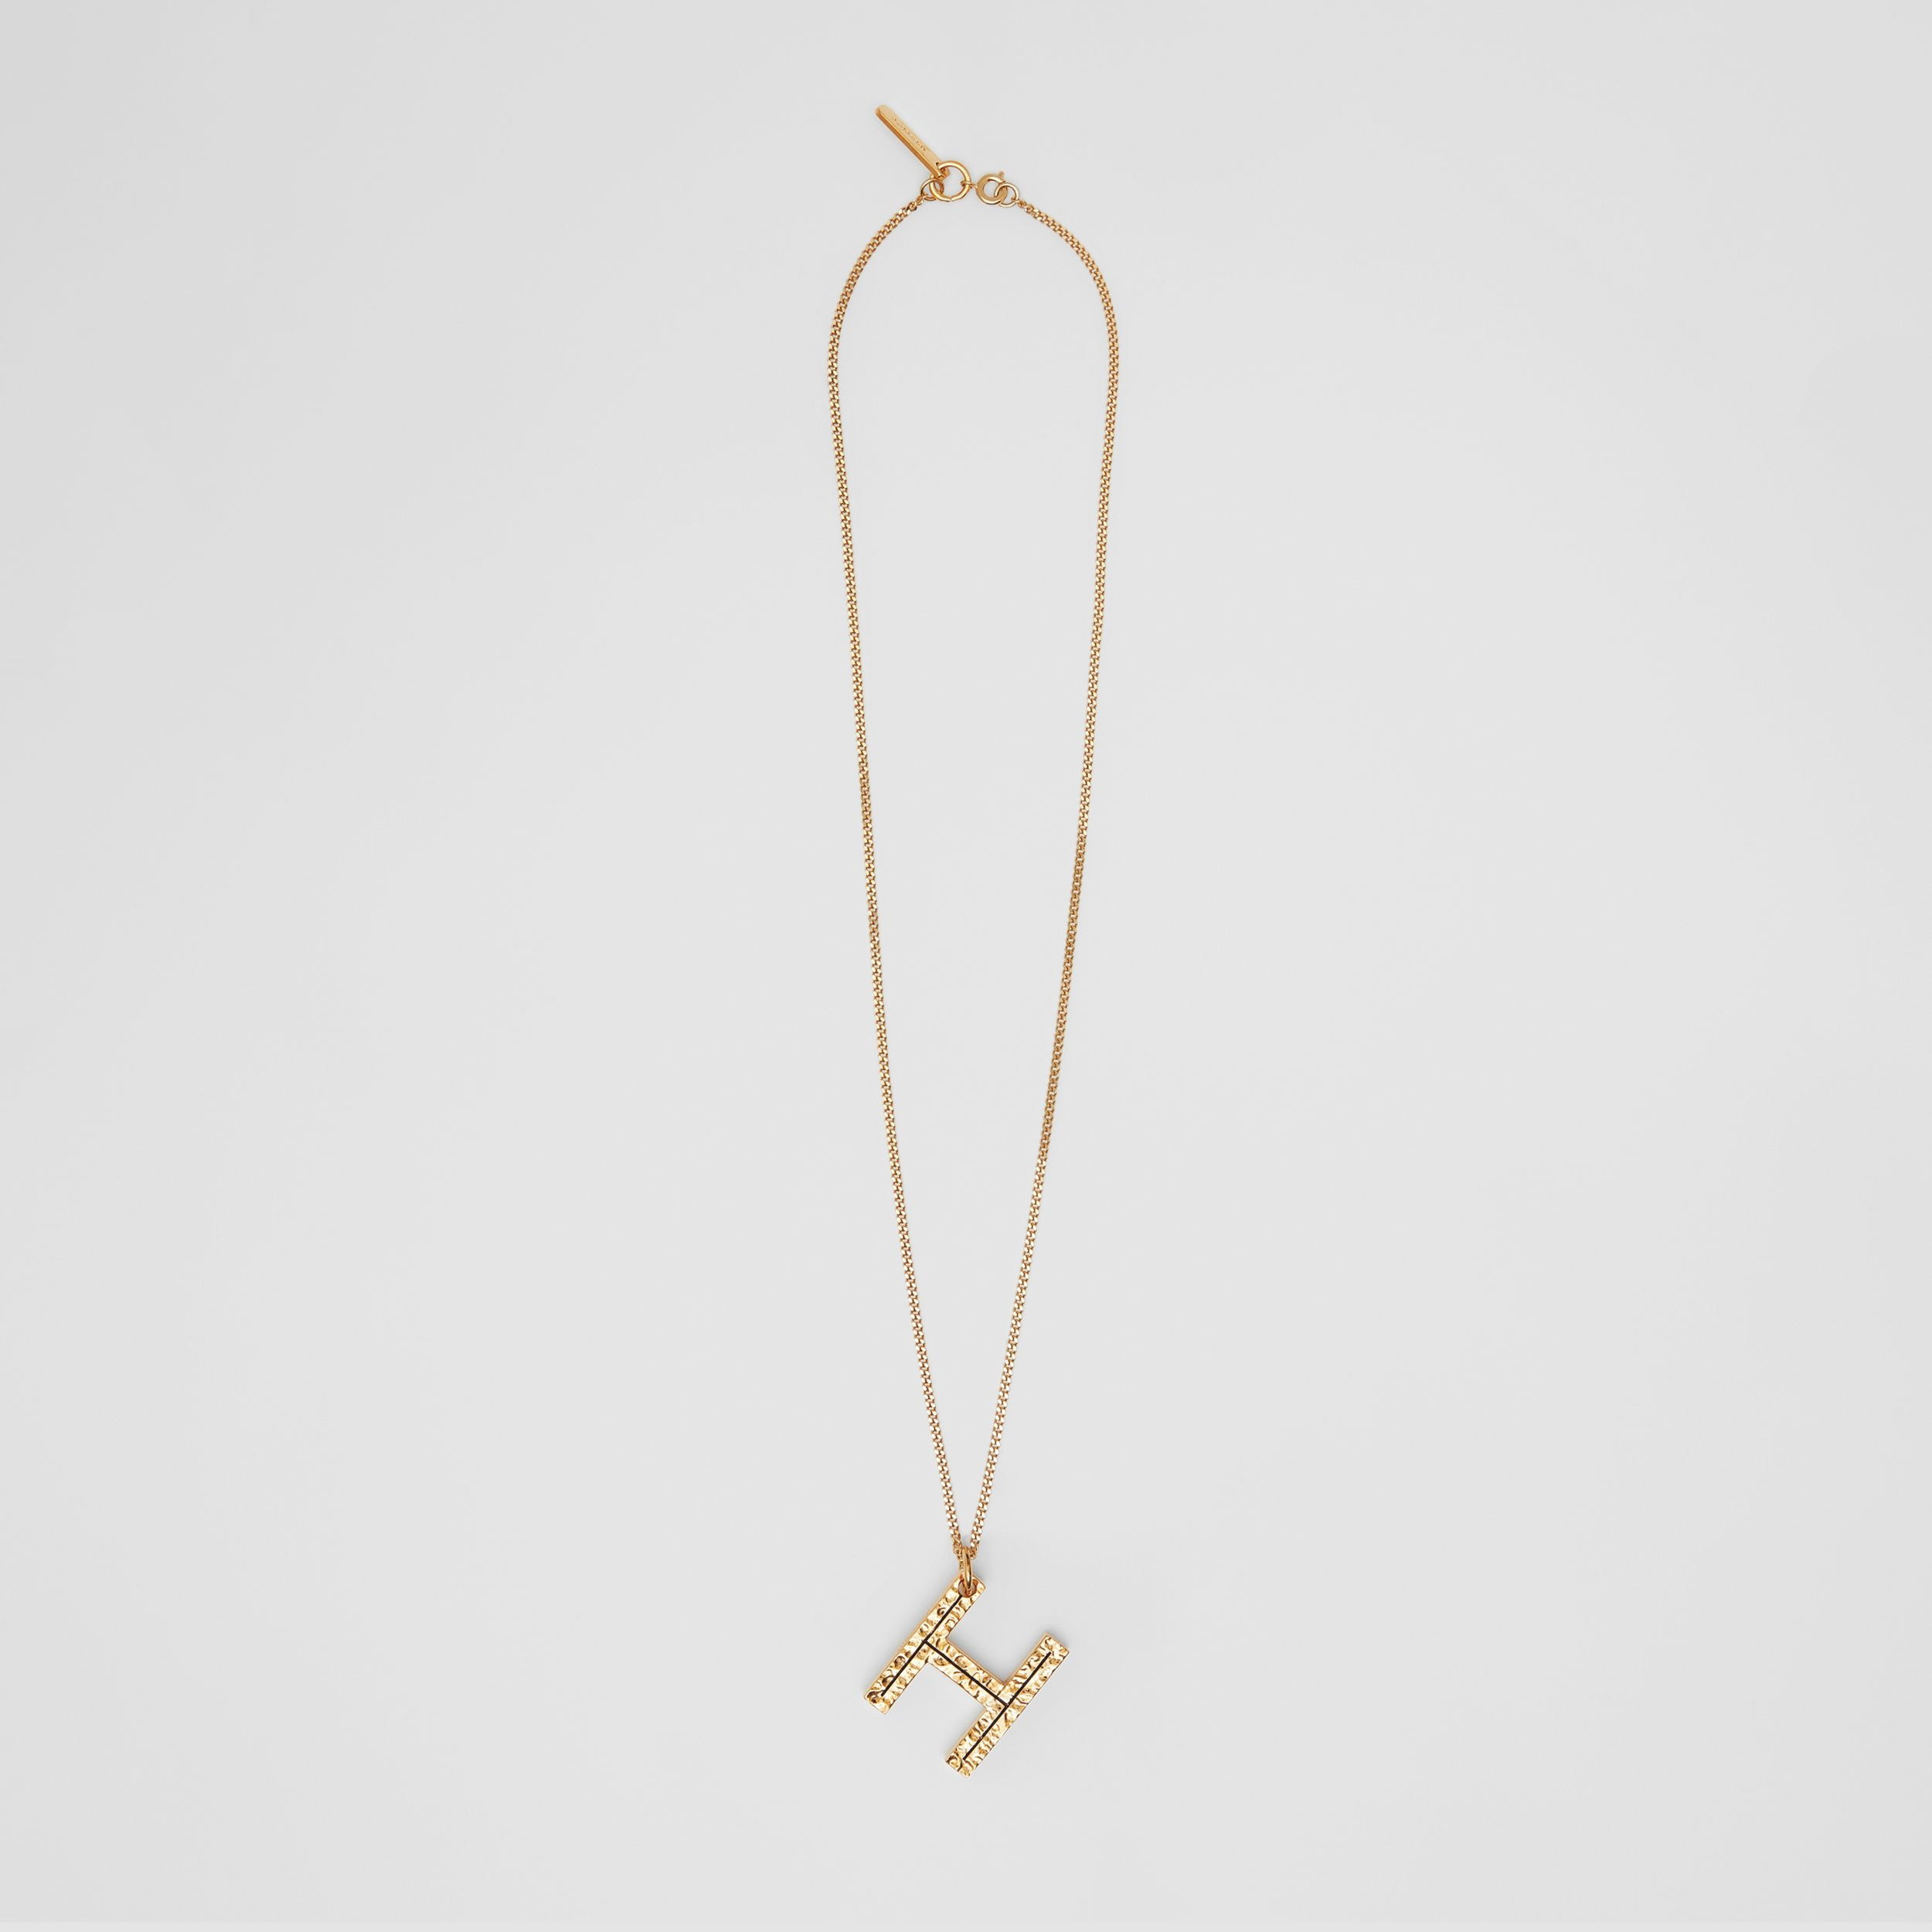 'H' Alphabet Charm Gold-plated Necklace in Light - Women | Burberry - 1